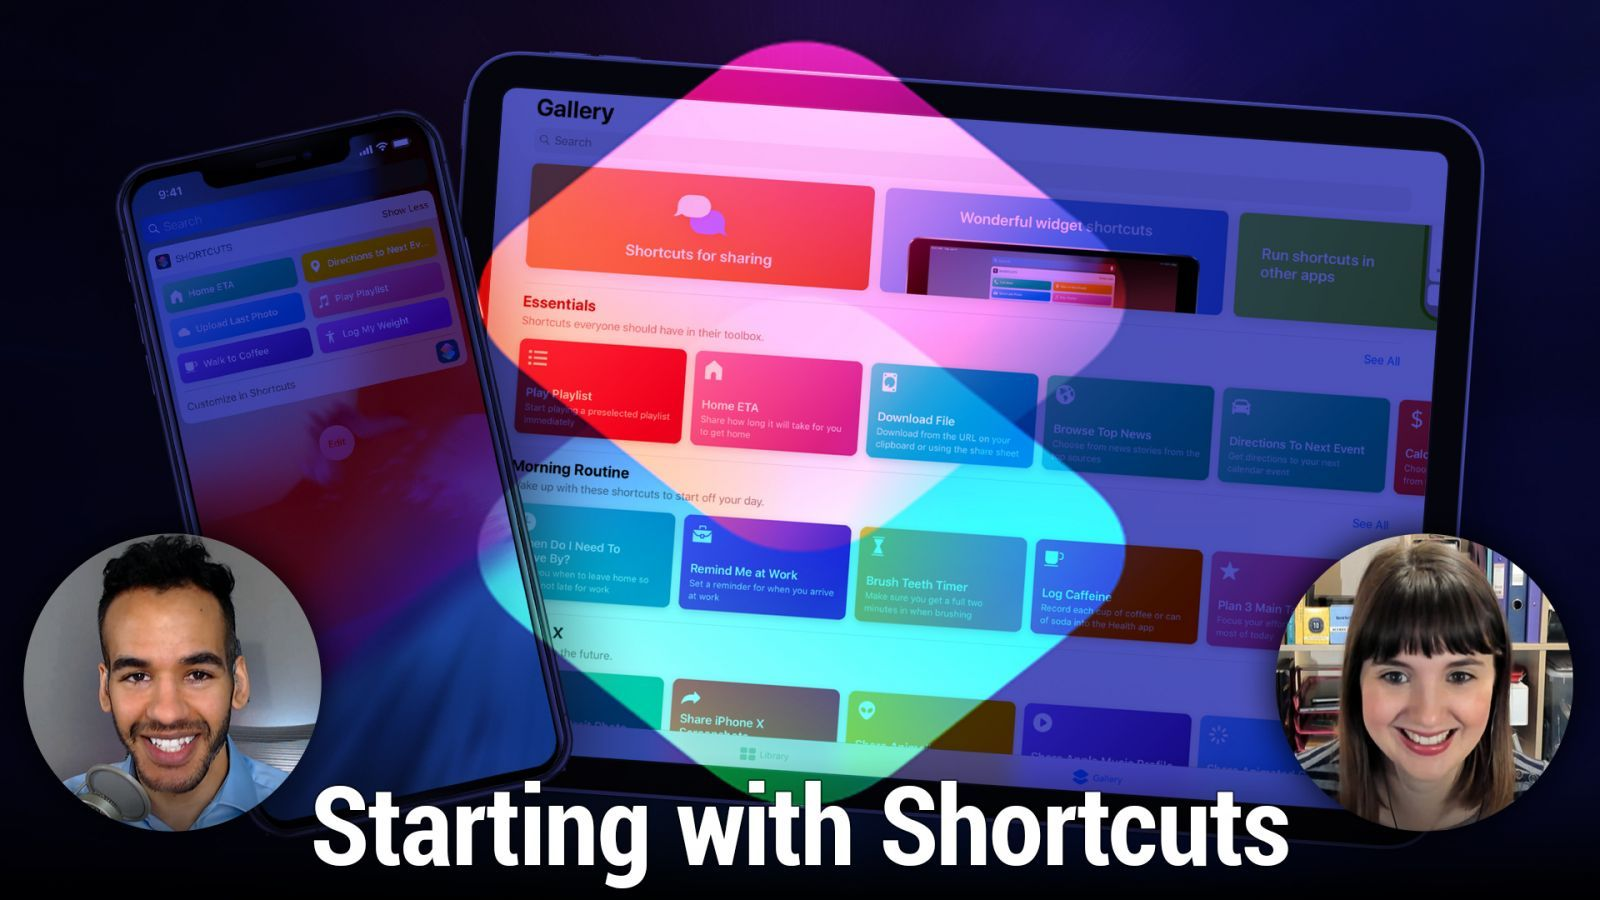 iOS 540: Starting With Shortcuts - How to use Siri Shortcuts & the Shortcuts app